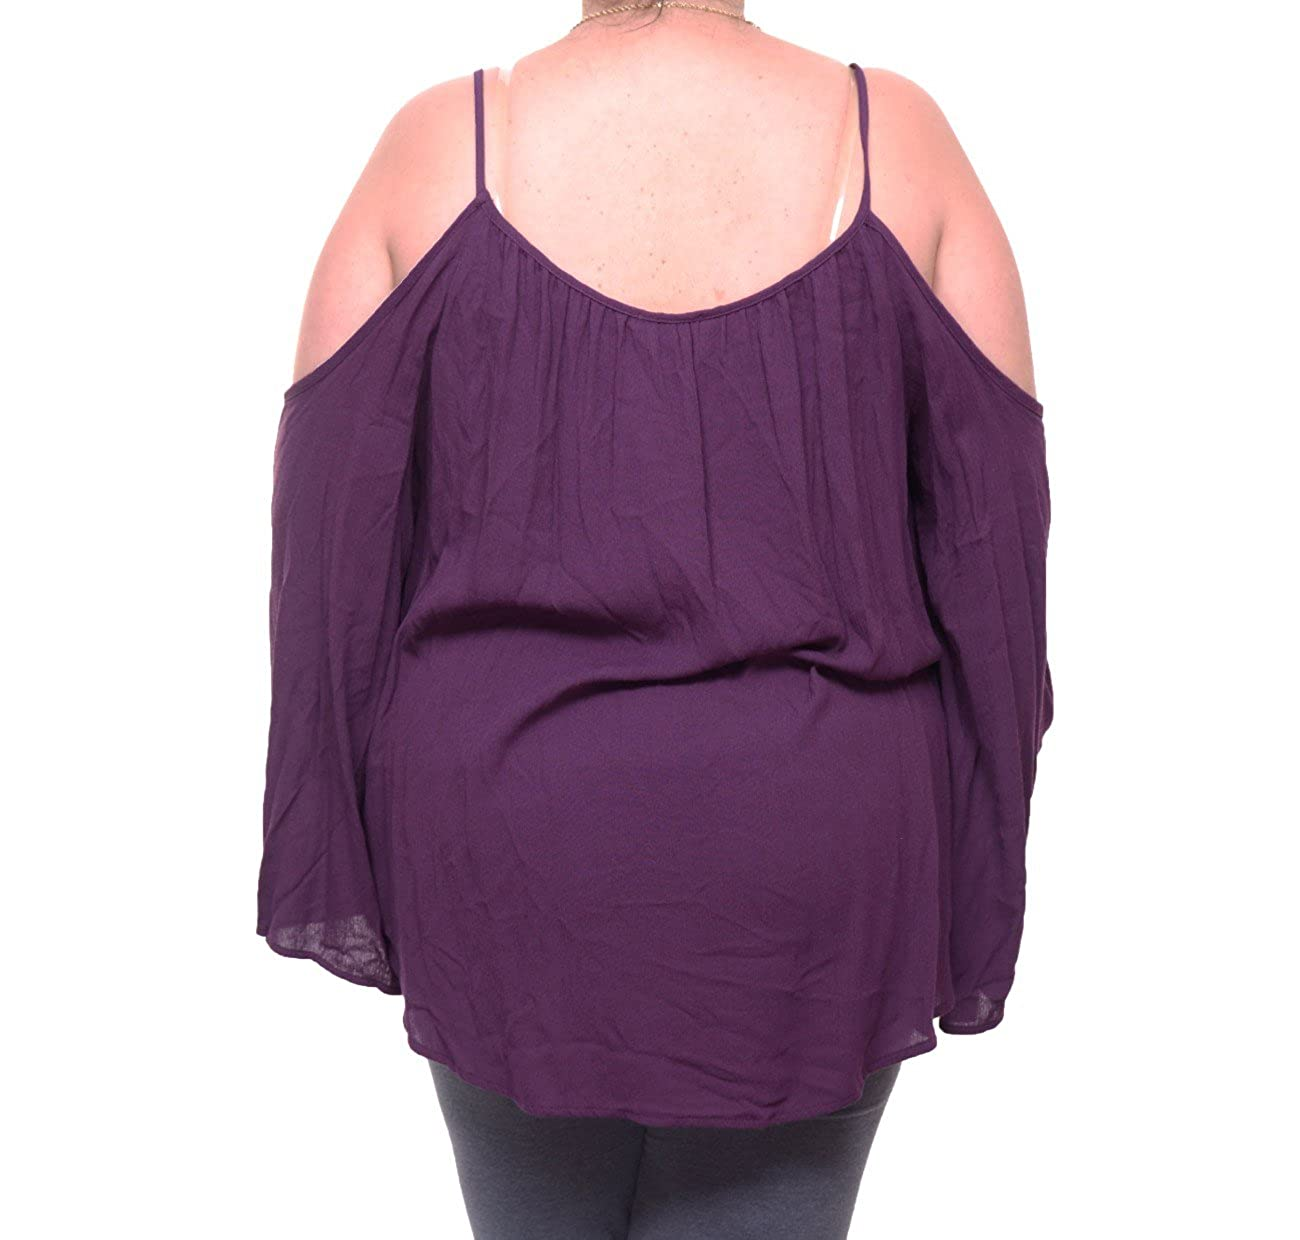 bda9cac5479f81 Chelsea Sky Womens Hi Low Cold Shoulder Blouse Purple S at Amazon Women s  Clothing store